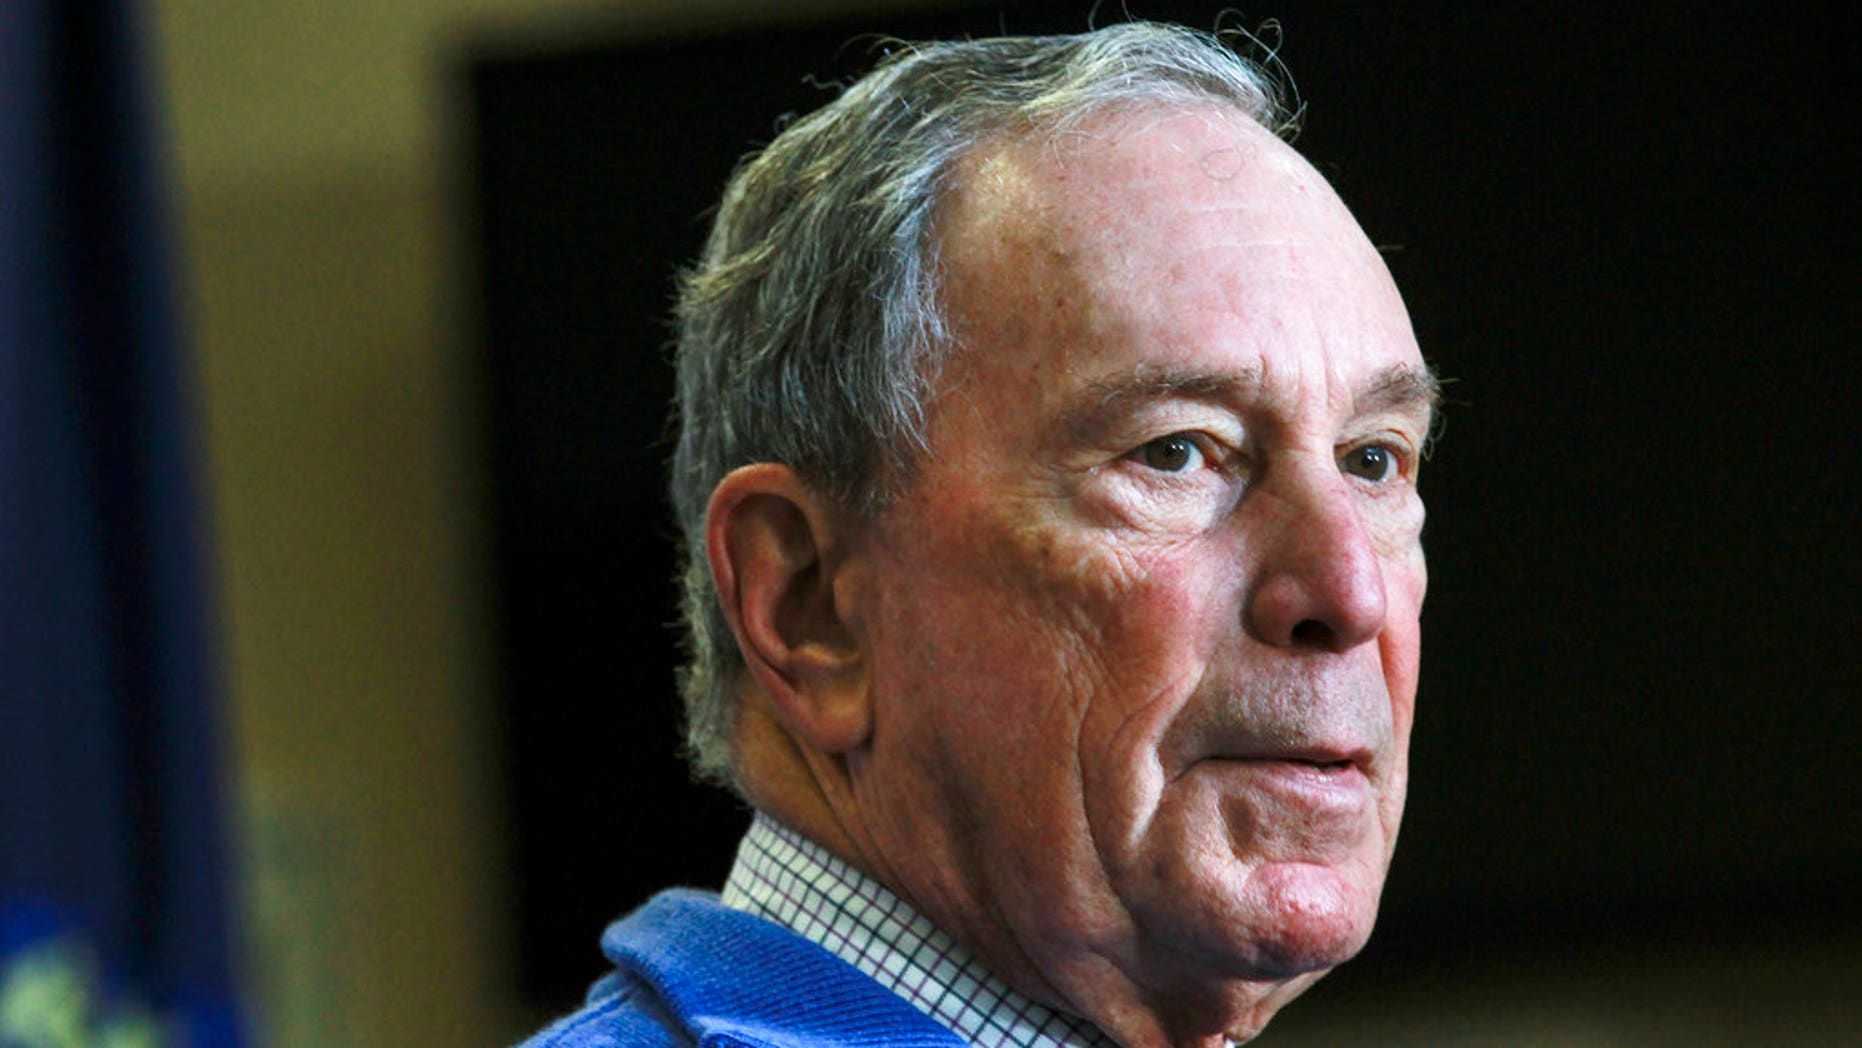 Former New York City Mayor Michael Bloomberg speaks at a Moms Demand Action gun safety rally at City Hall in Nashua, N.H., in an undated photo.